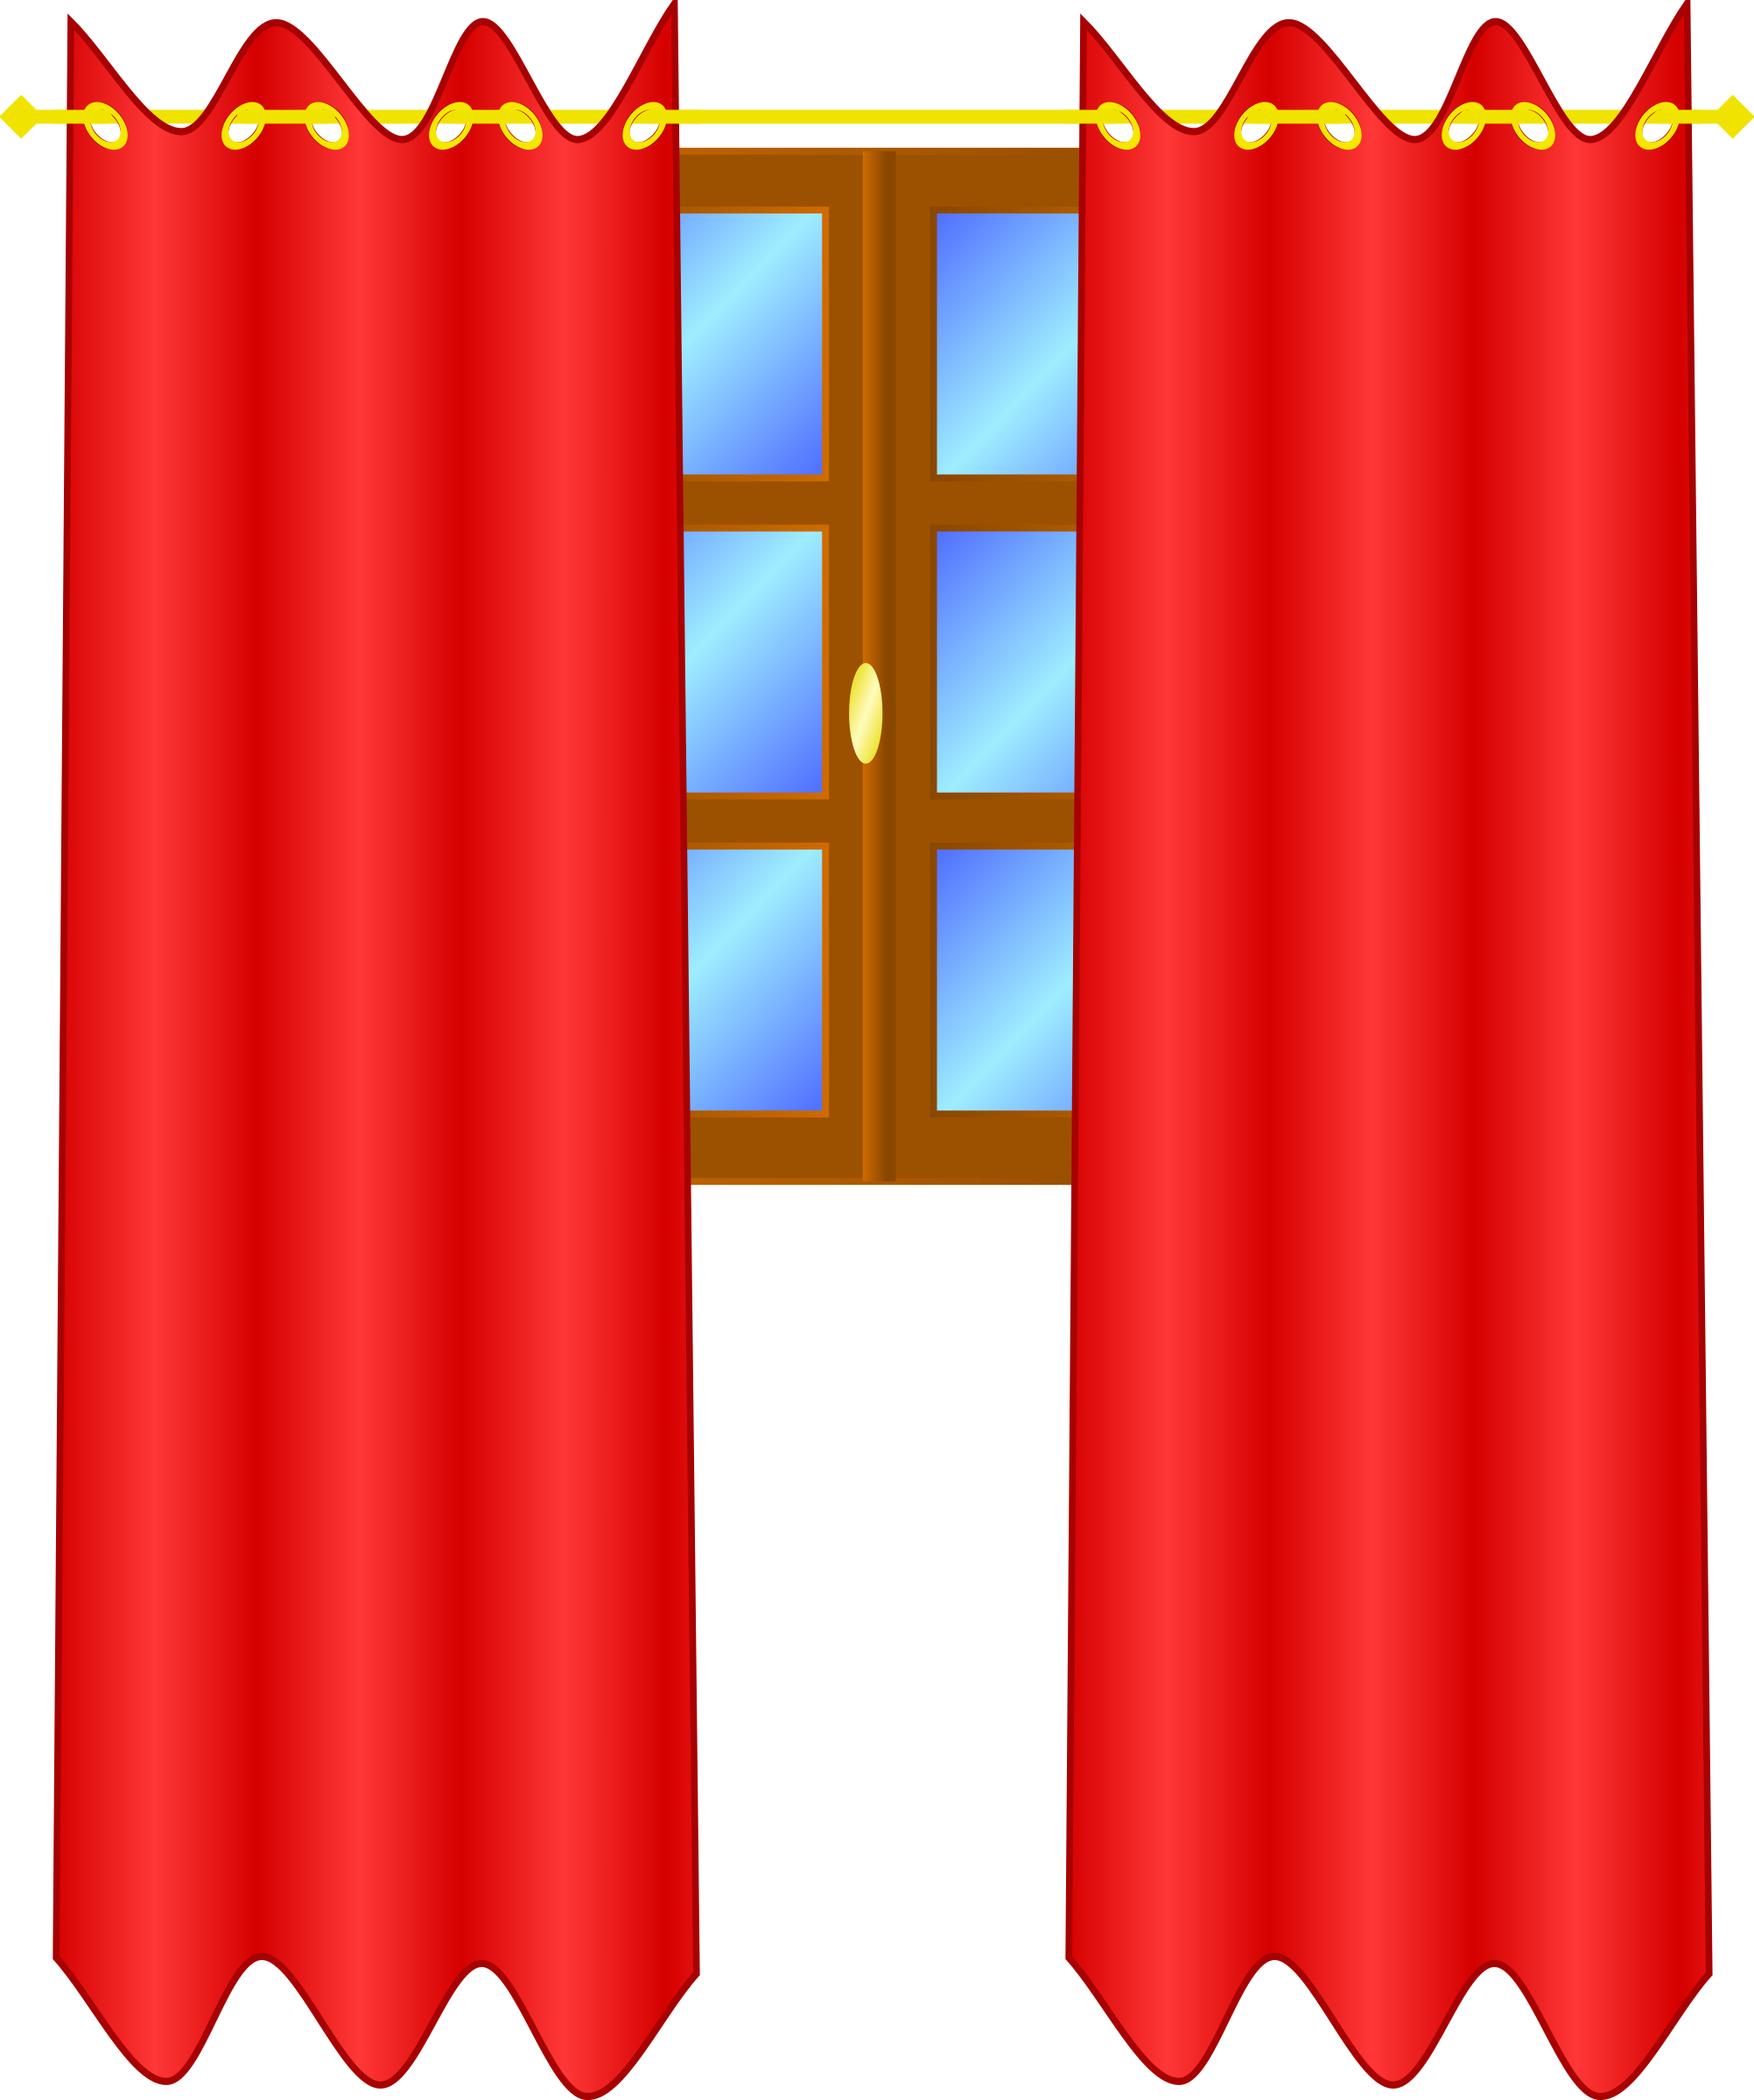 Window with draperies image. Curtain clipart big red